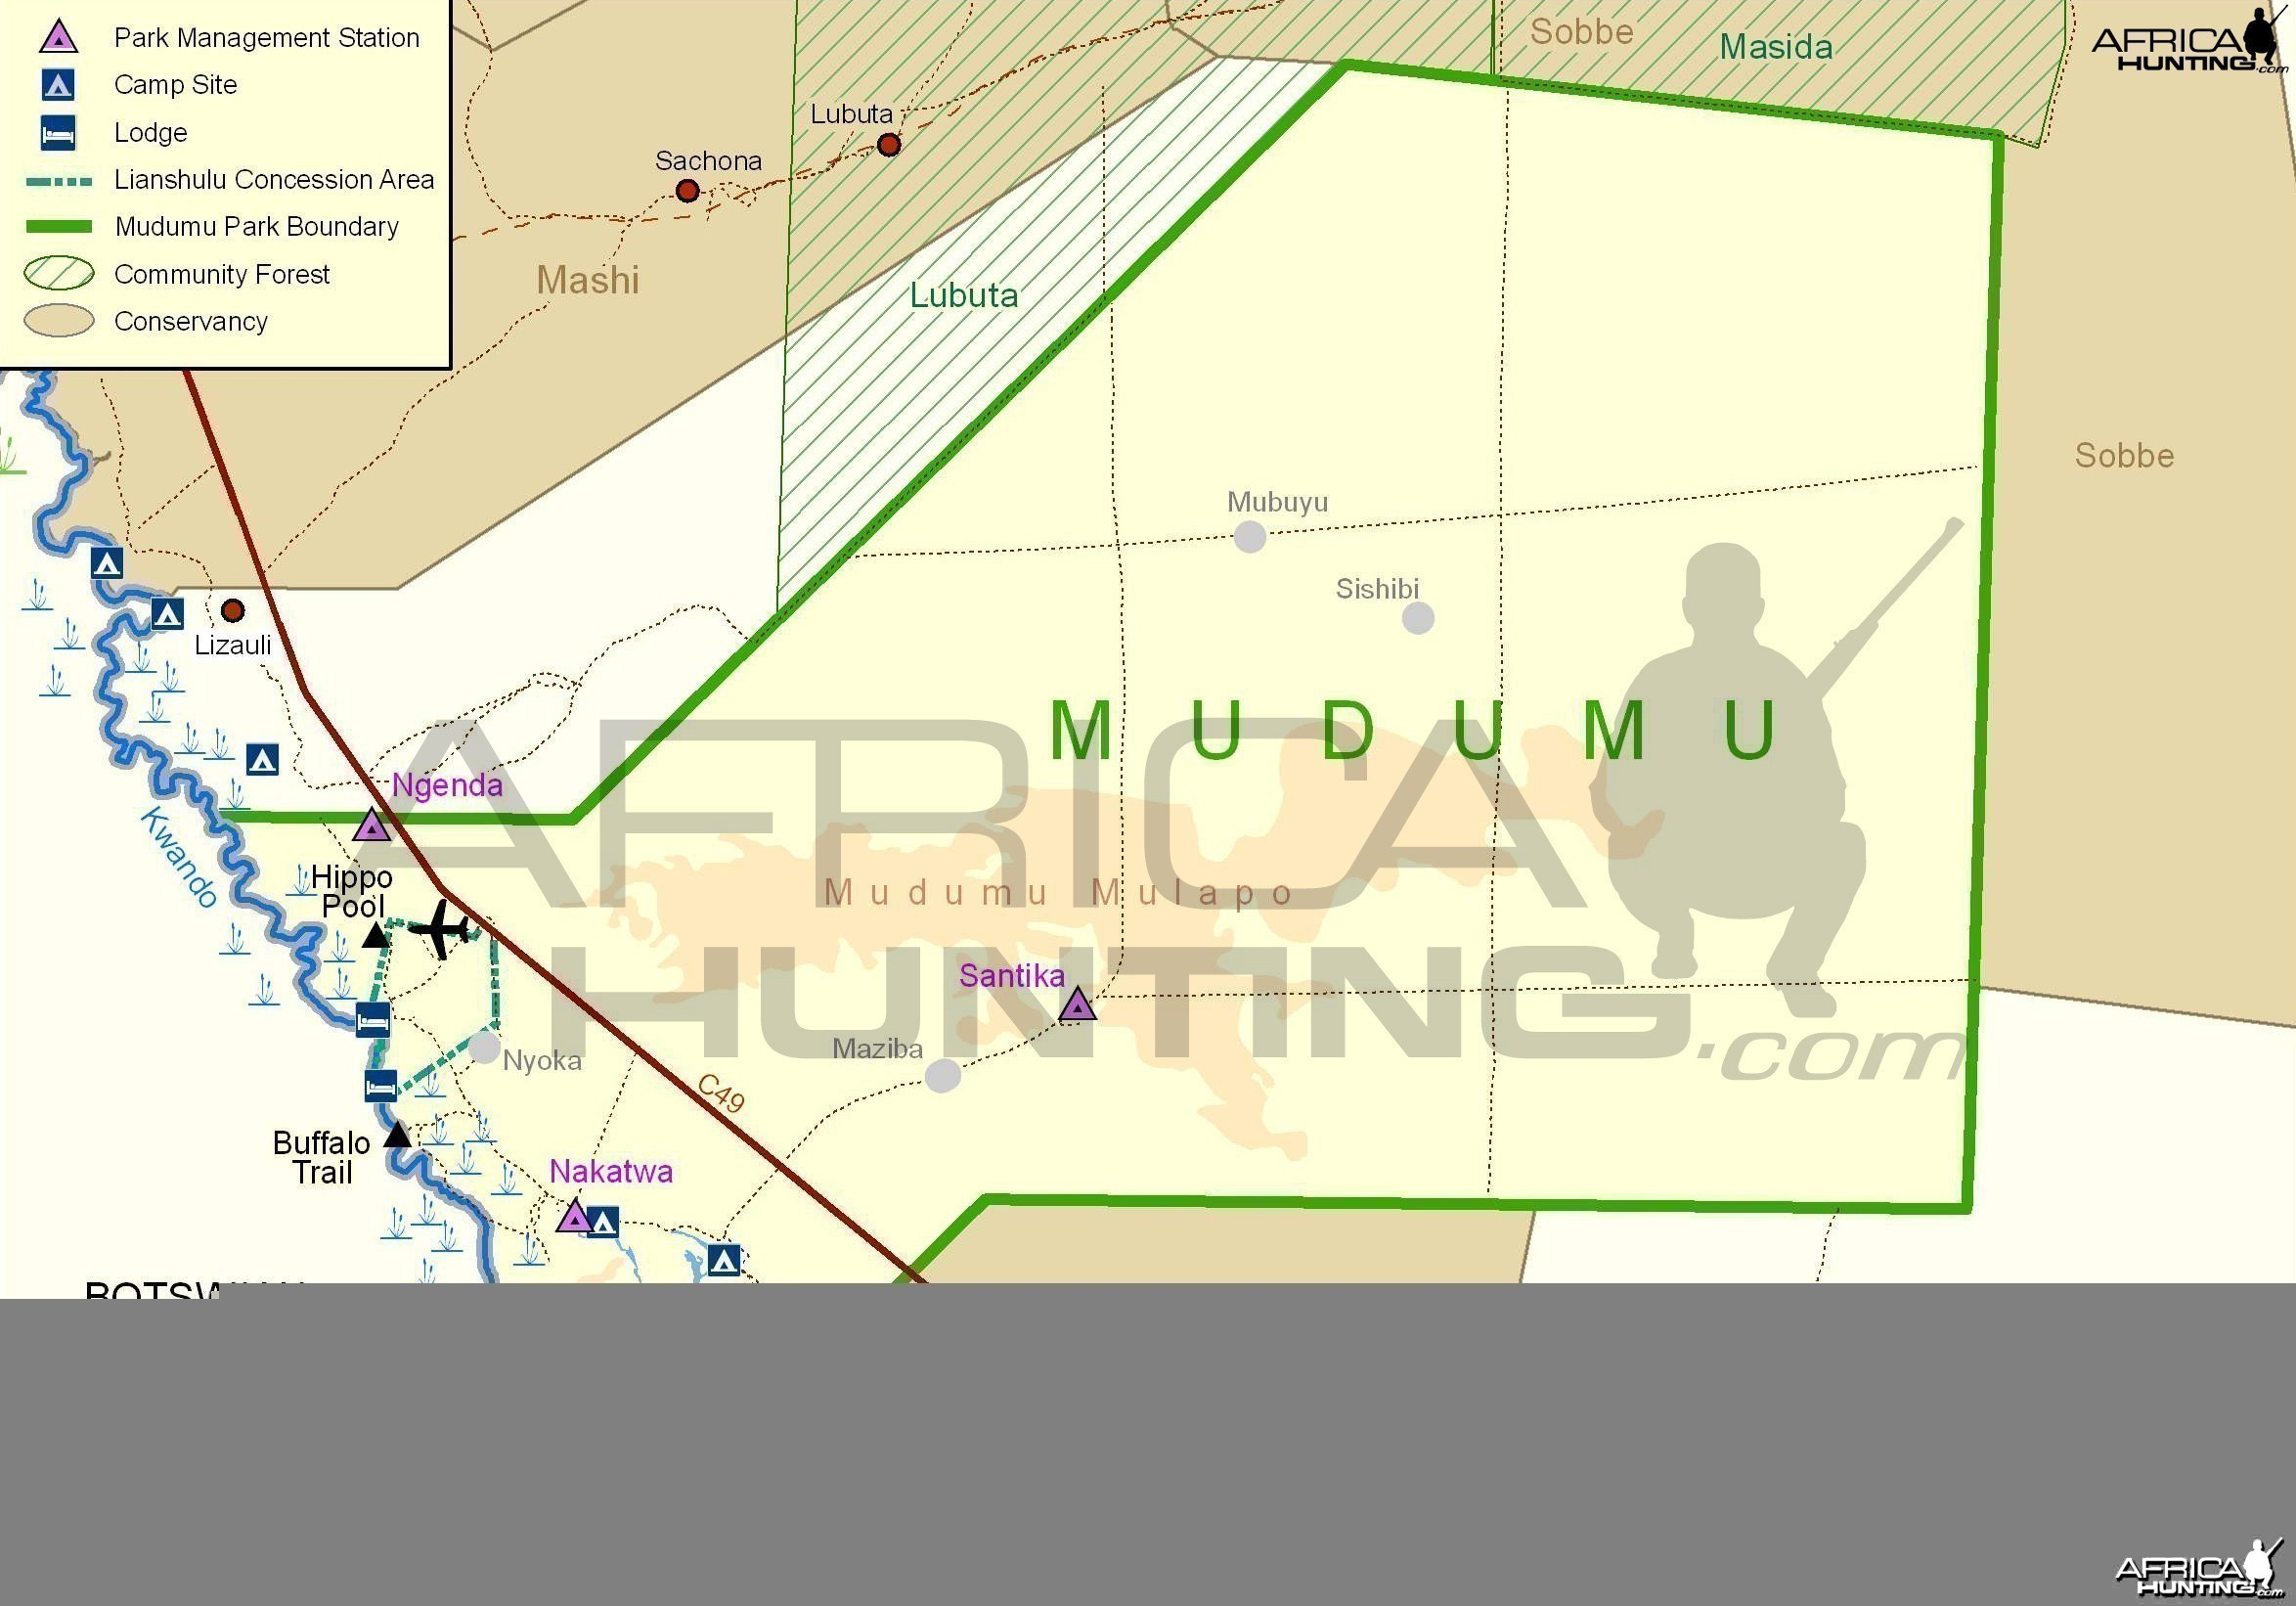 Mudumu National Park Map, Namibia